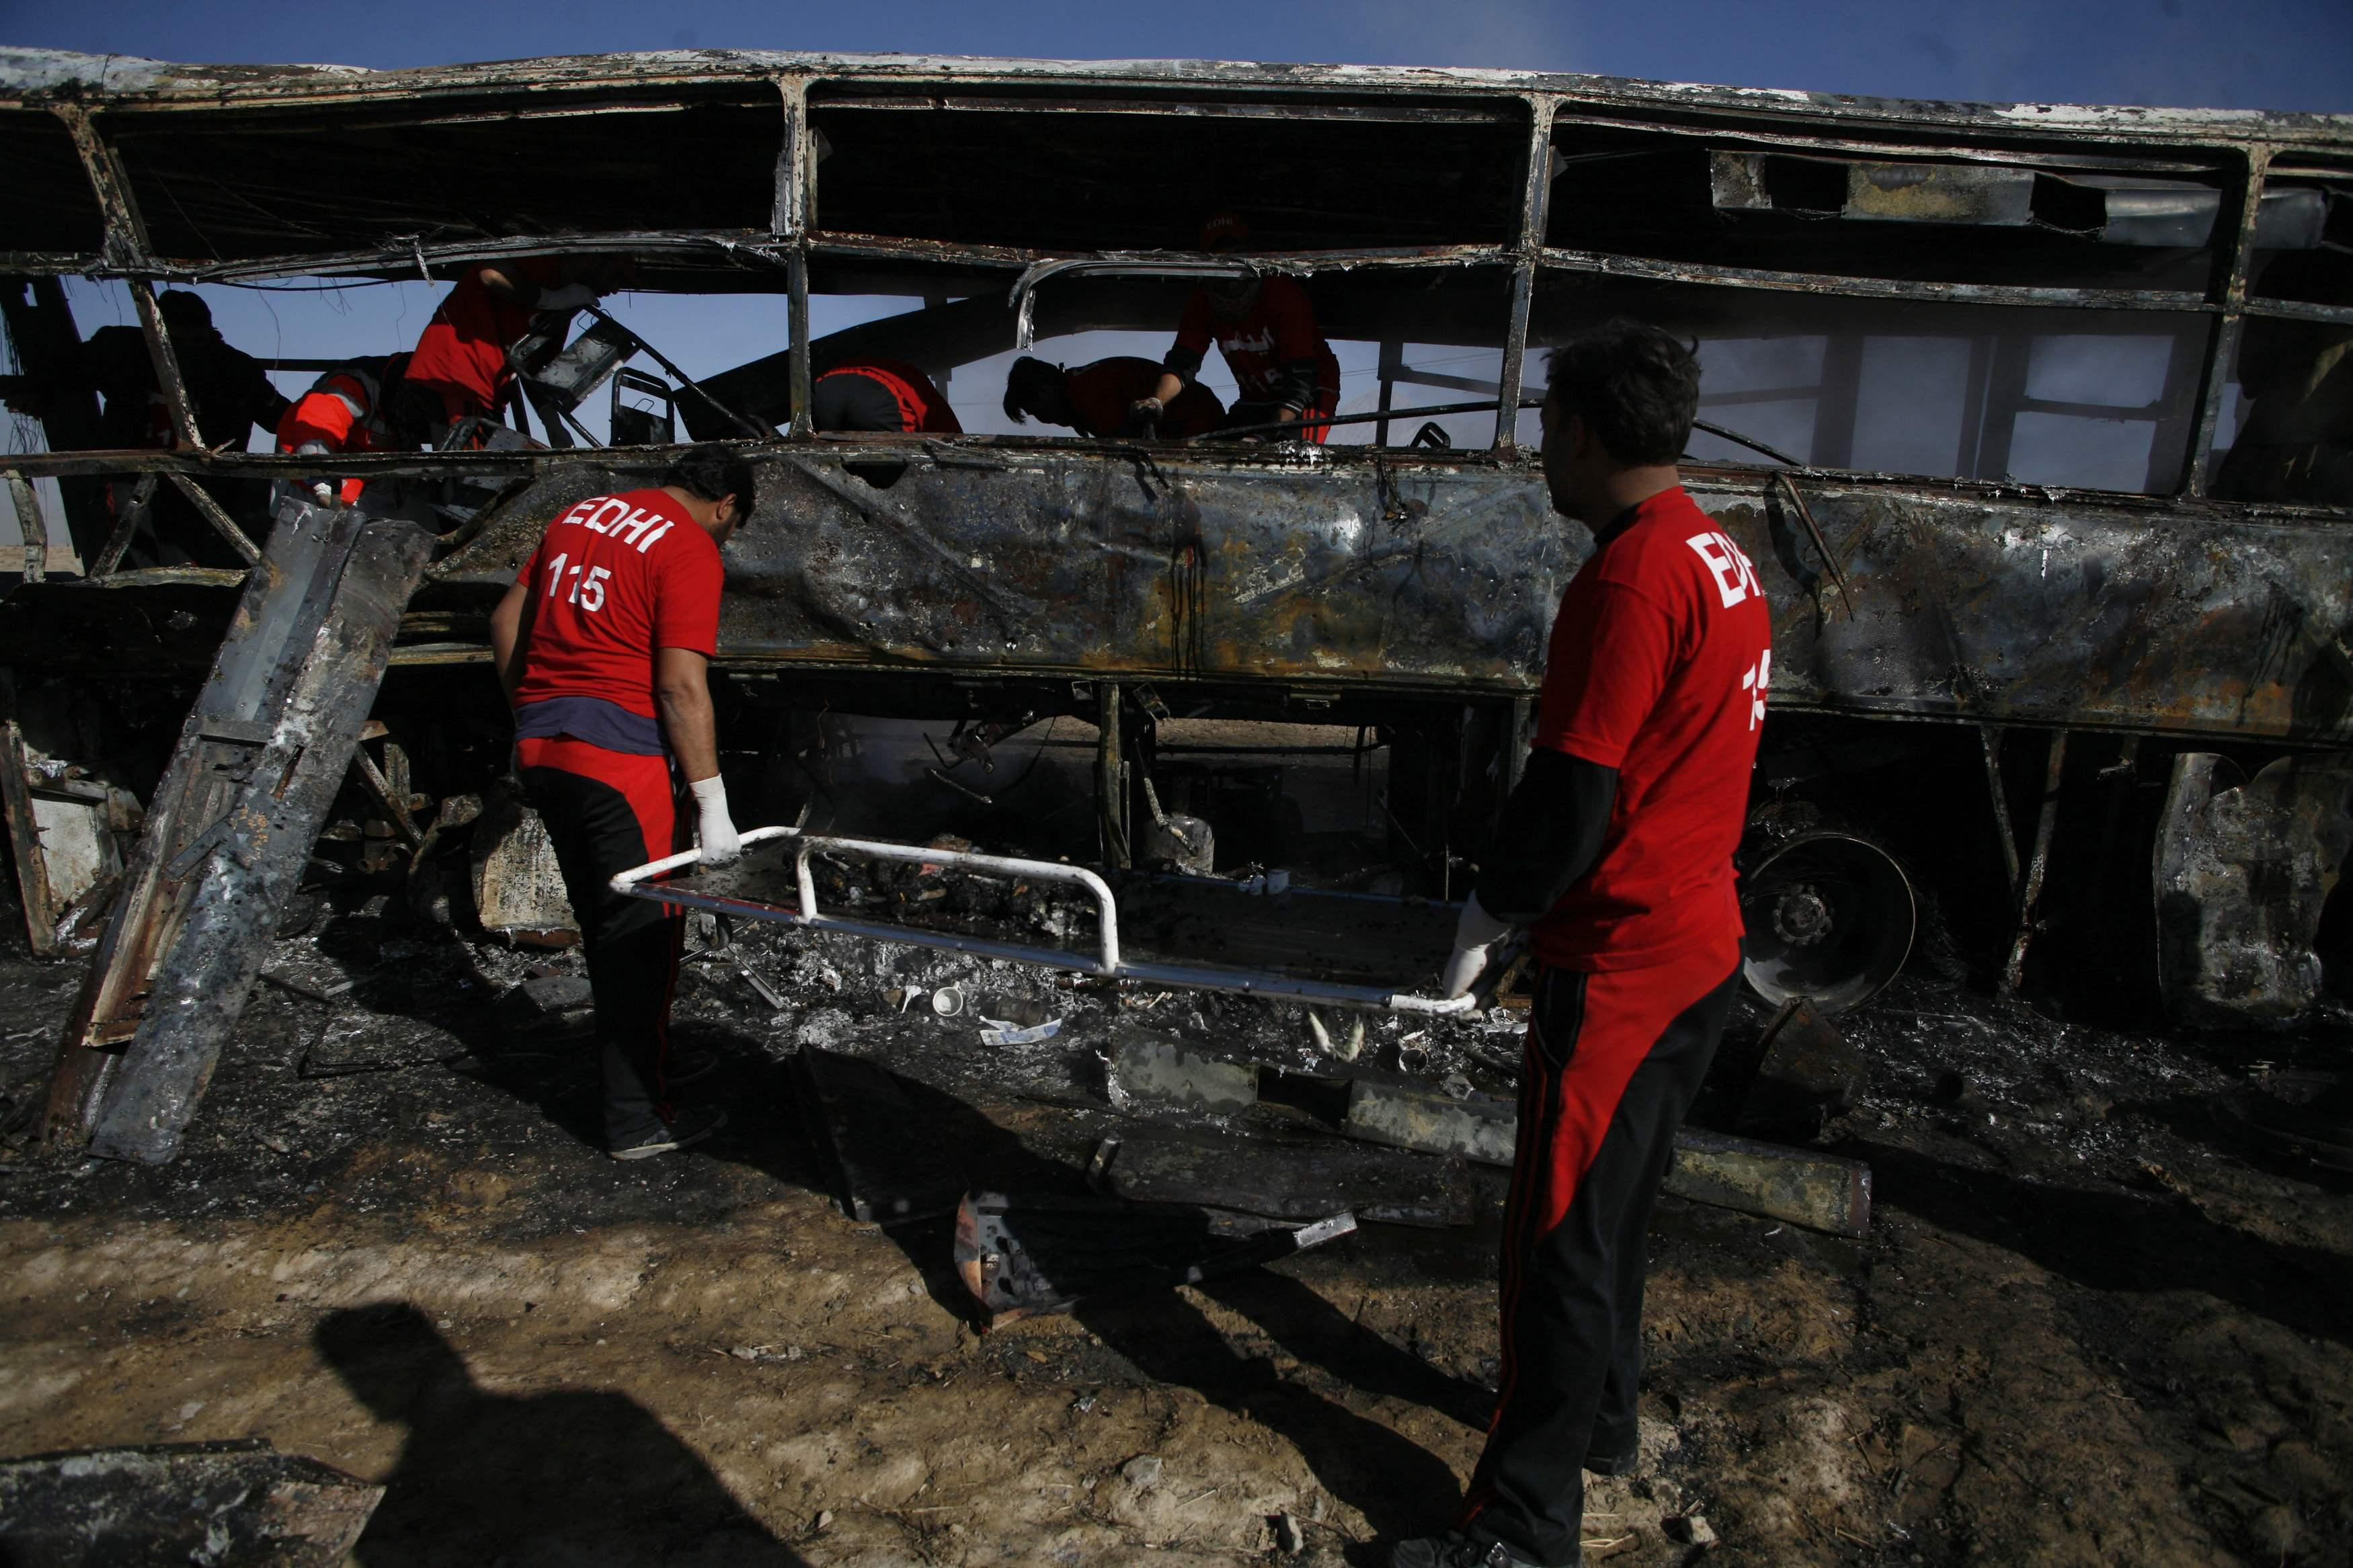 Emergency personnel transport burnt human remains on a stretcher after a car bomb exploded in Quetta